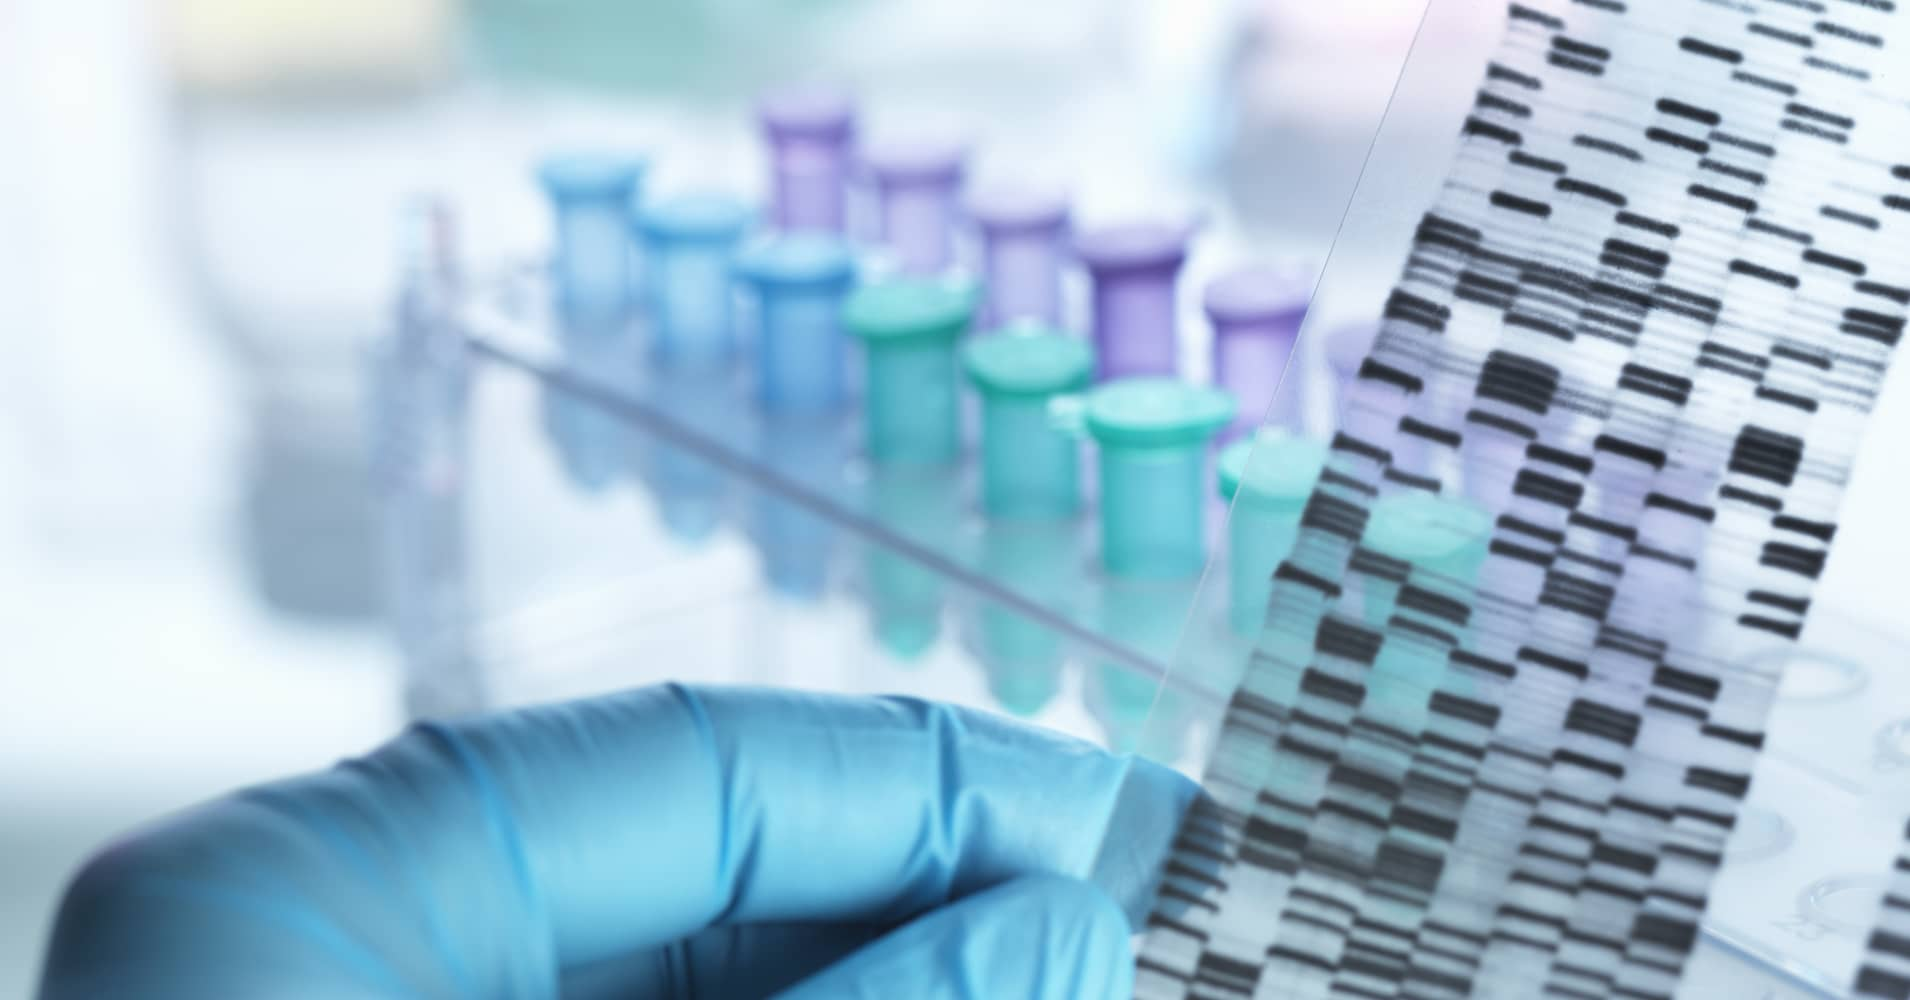 application anaylsing dna from consumer testing